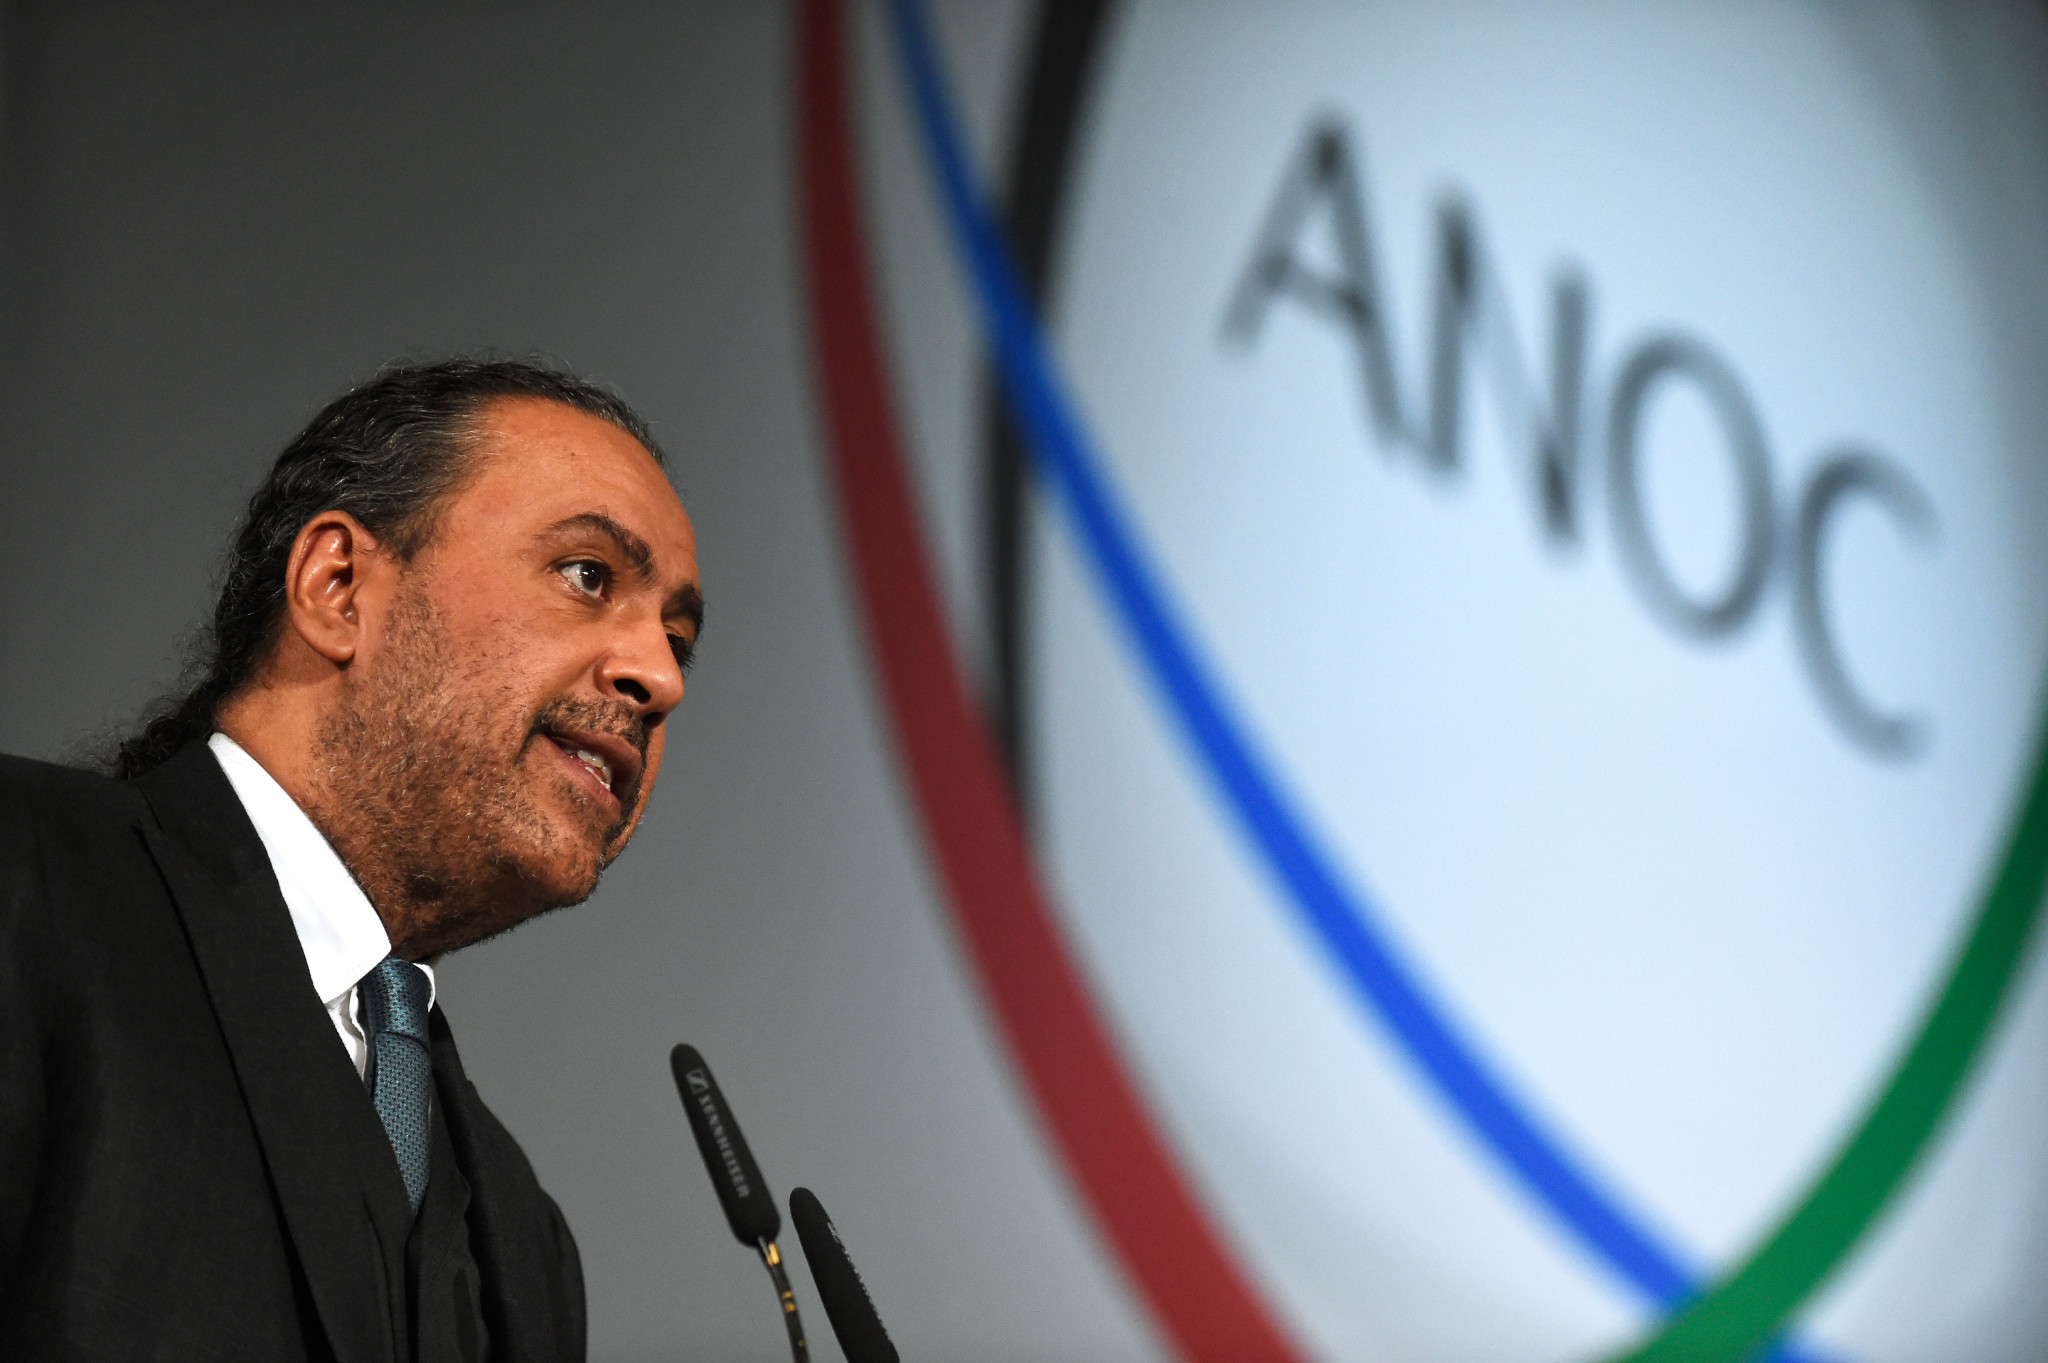 Sheikh Ahmad given round of applause after cleared of wrongdoing by ANOC General Assembly